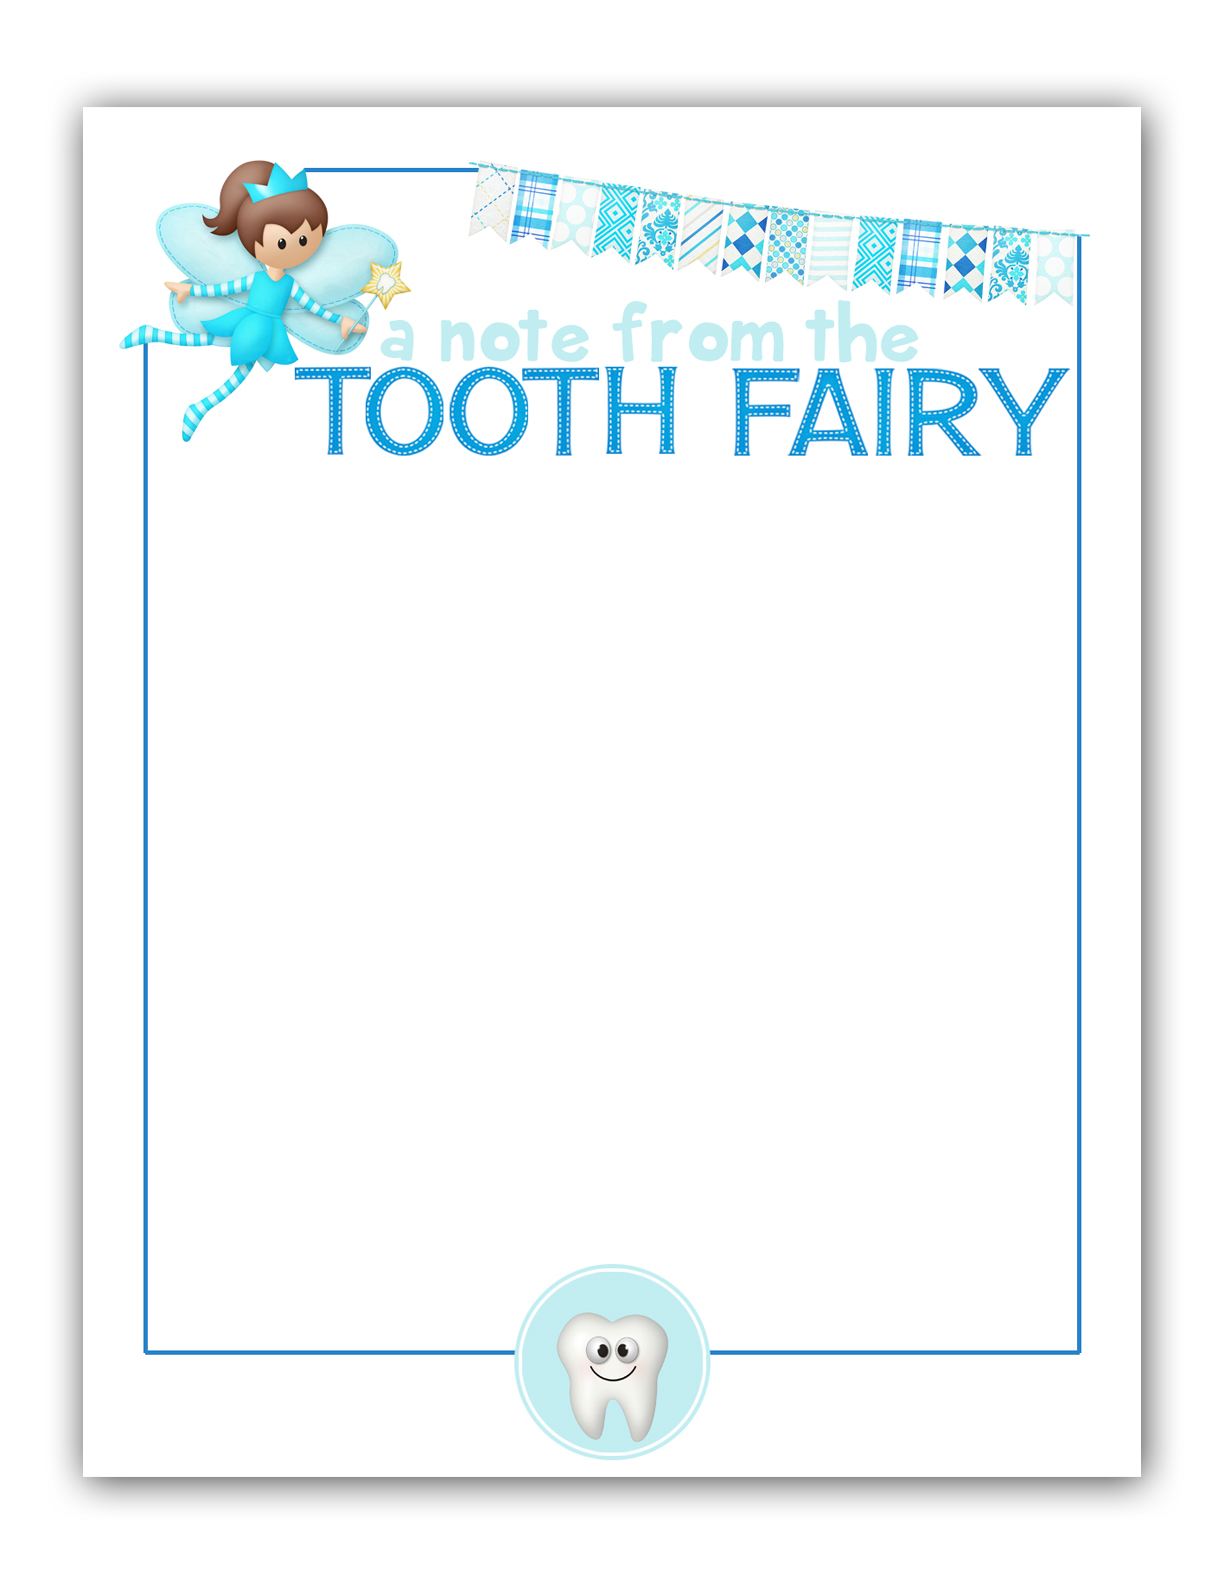 Designs Blog: Tooth Fairy Stationary - FREE Printable